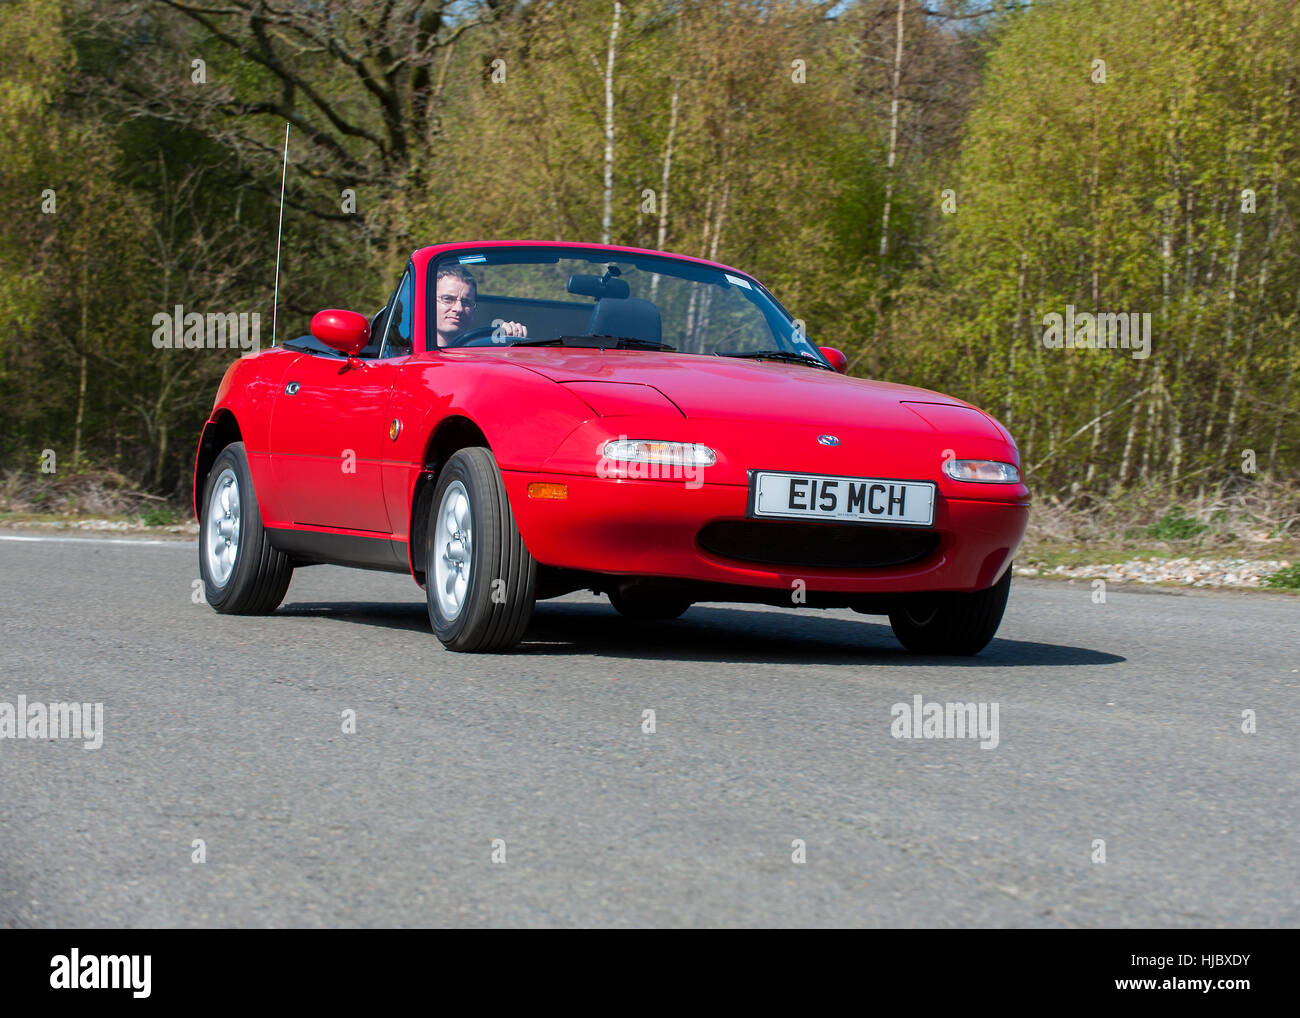 Mk1 Mazda MX5 Open Top Japanese Sports Car (1991   1998) Inspired By  Classic British 60s Sports Cars